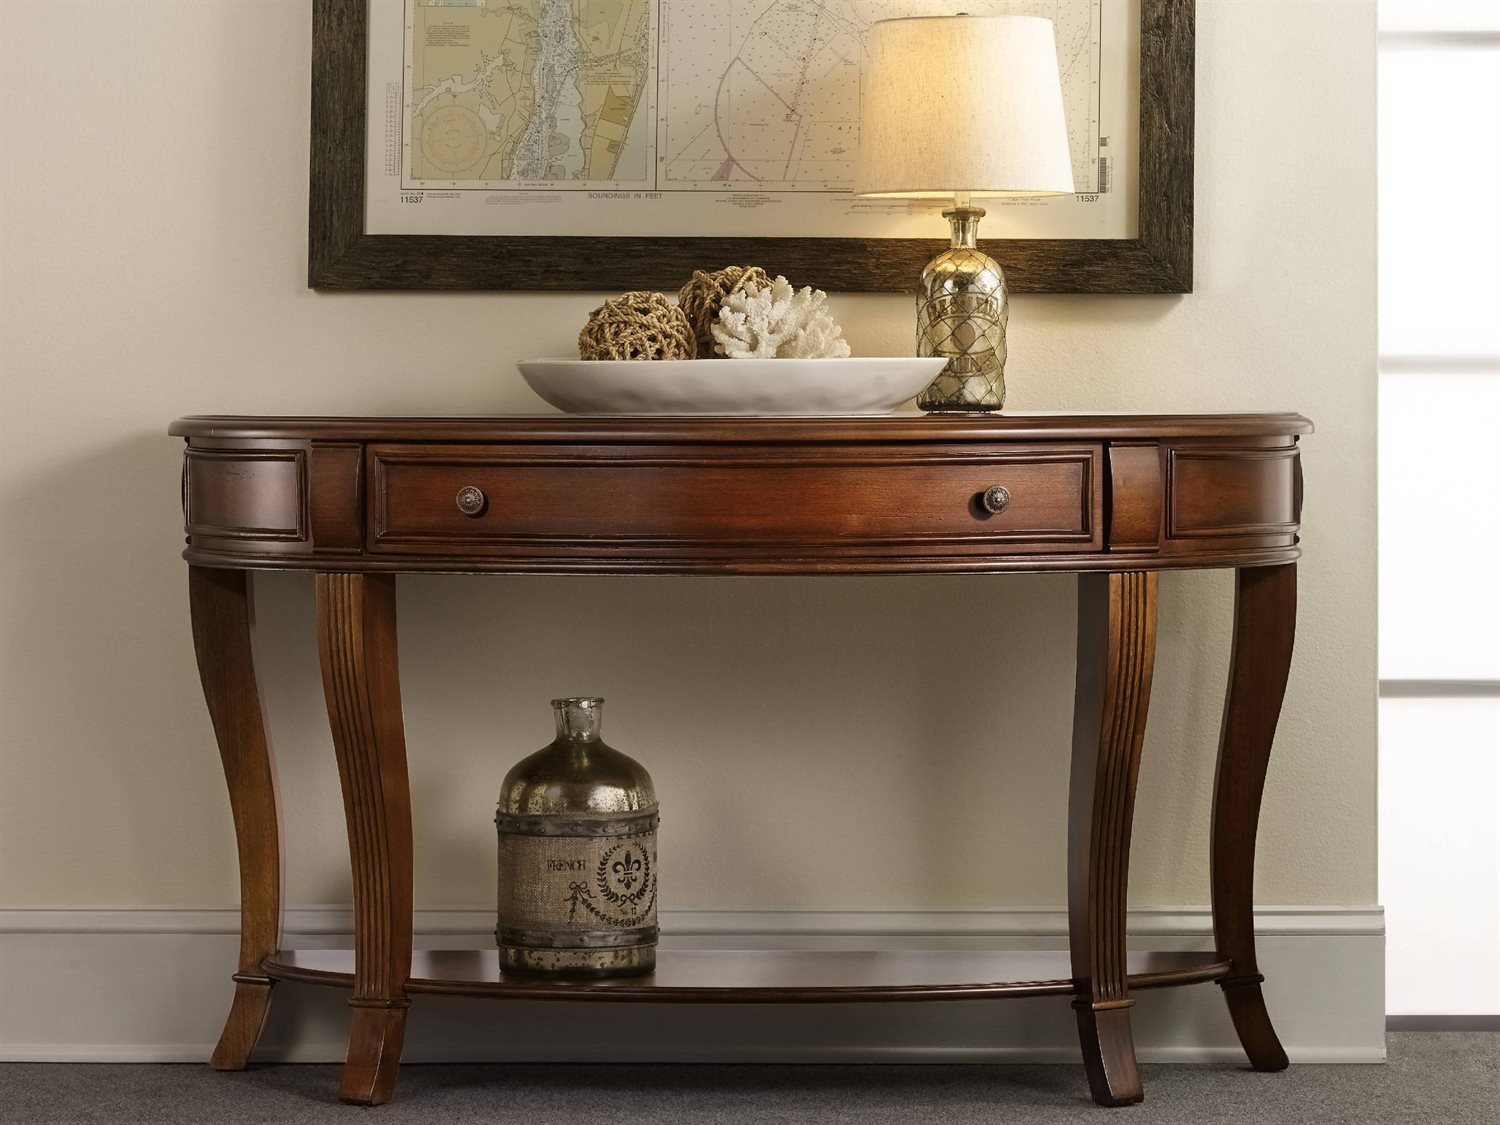 Glass Demilune Console Table — Jherievans for Clairemont Demilune Console Tables (Image 15 of 30)